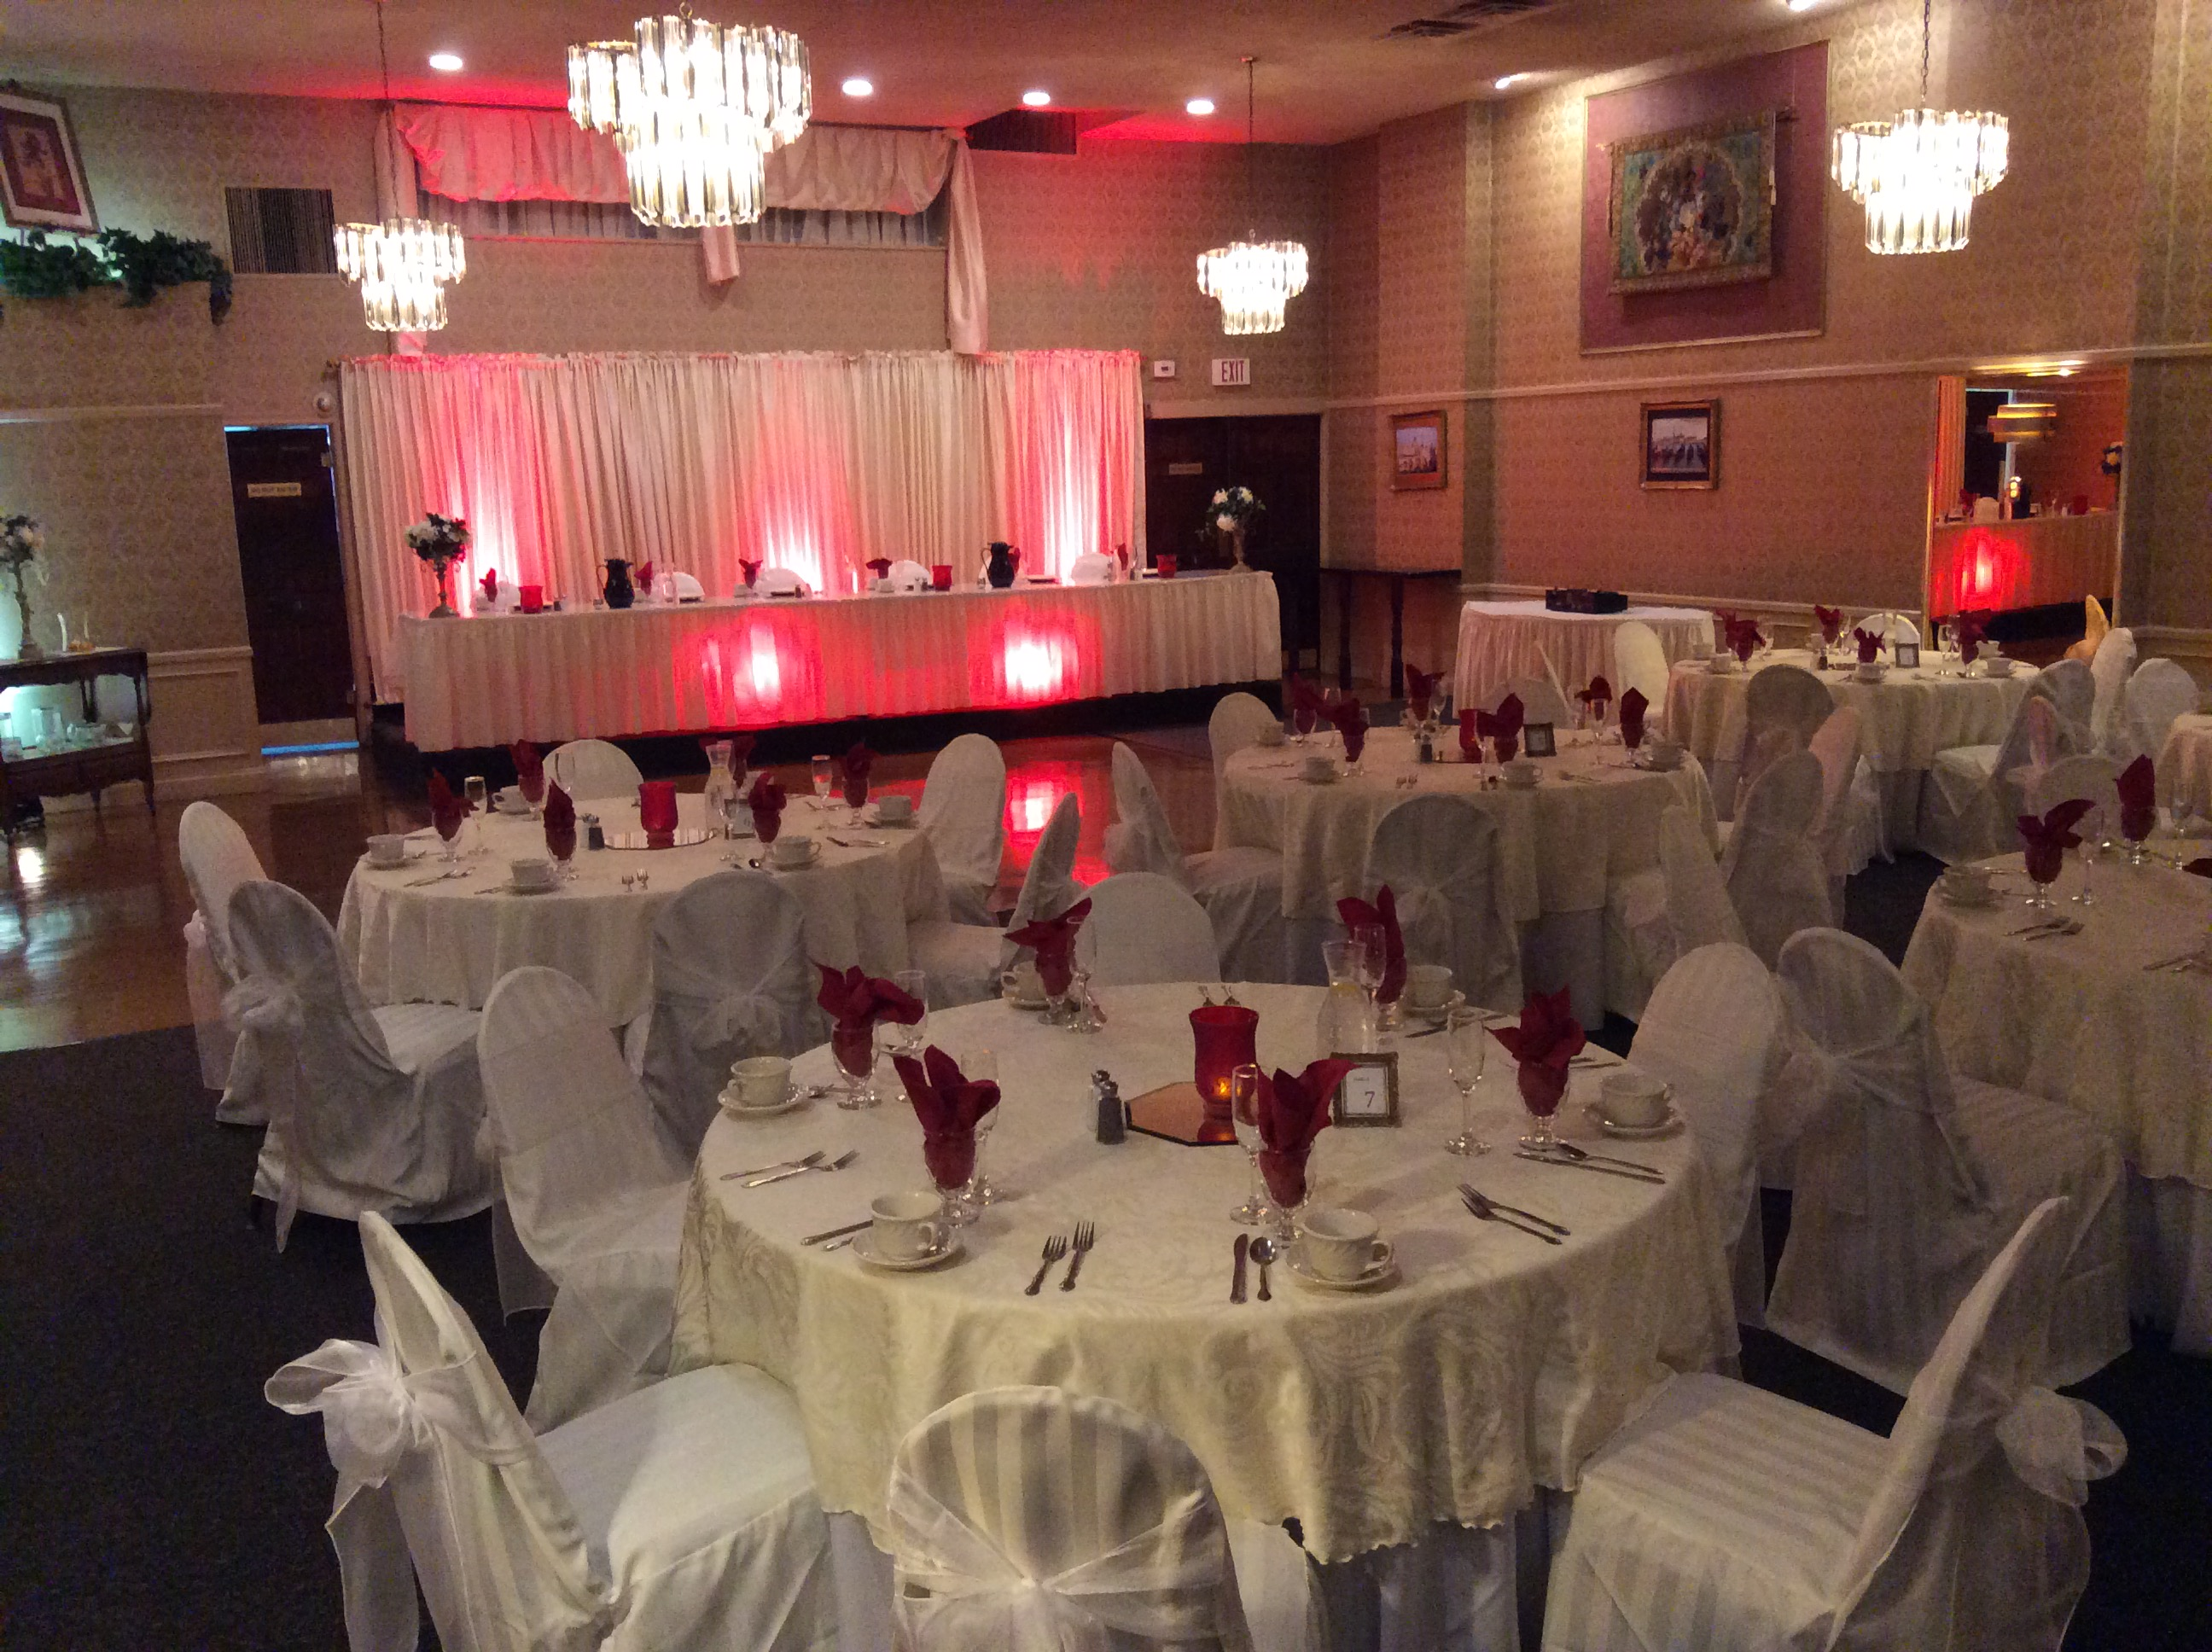 Banquet Hall, Wedding Venue, Event Catering | Edgemont Caterers ...